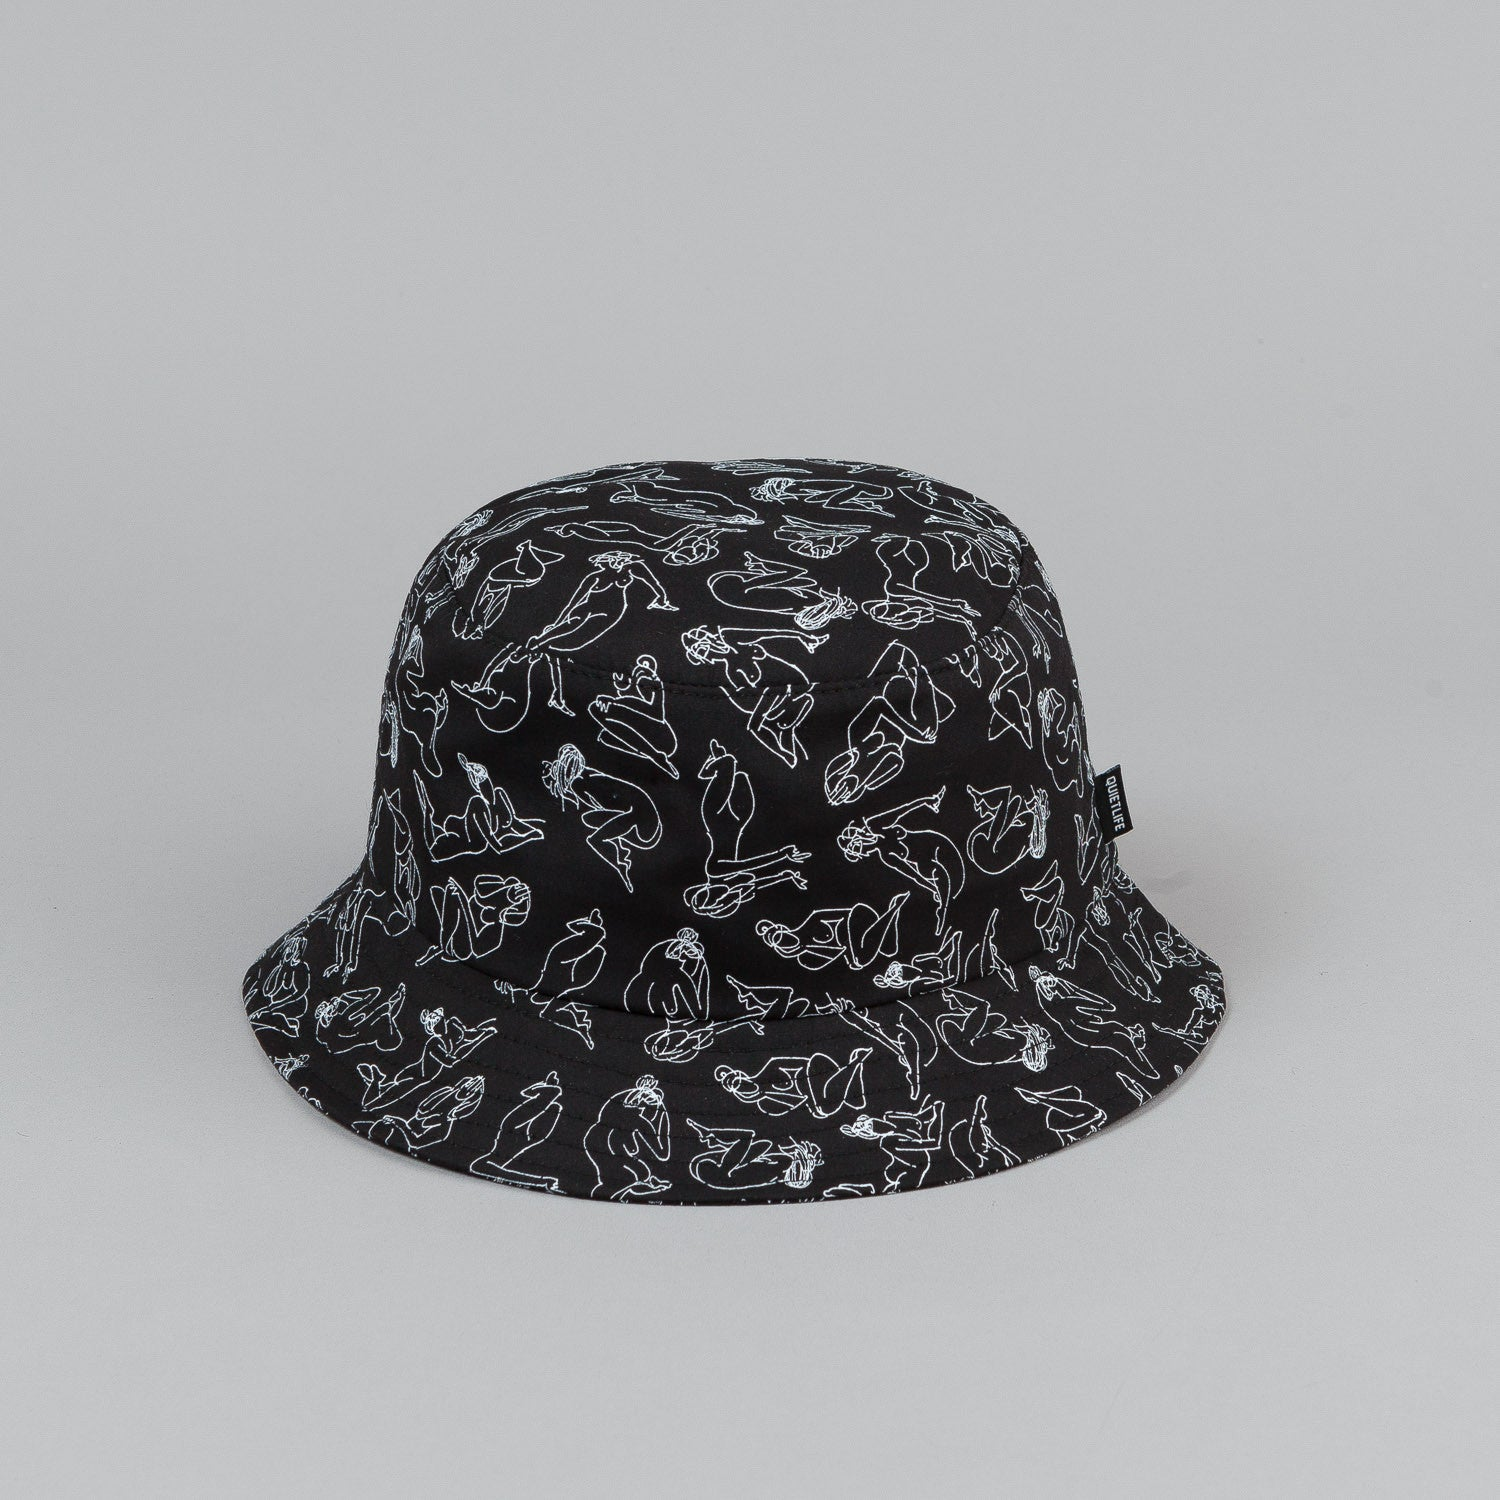 The Quiet Life Girls Bucket Hat - Black